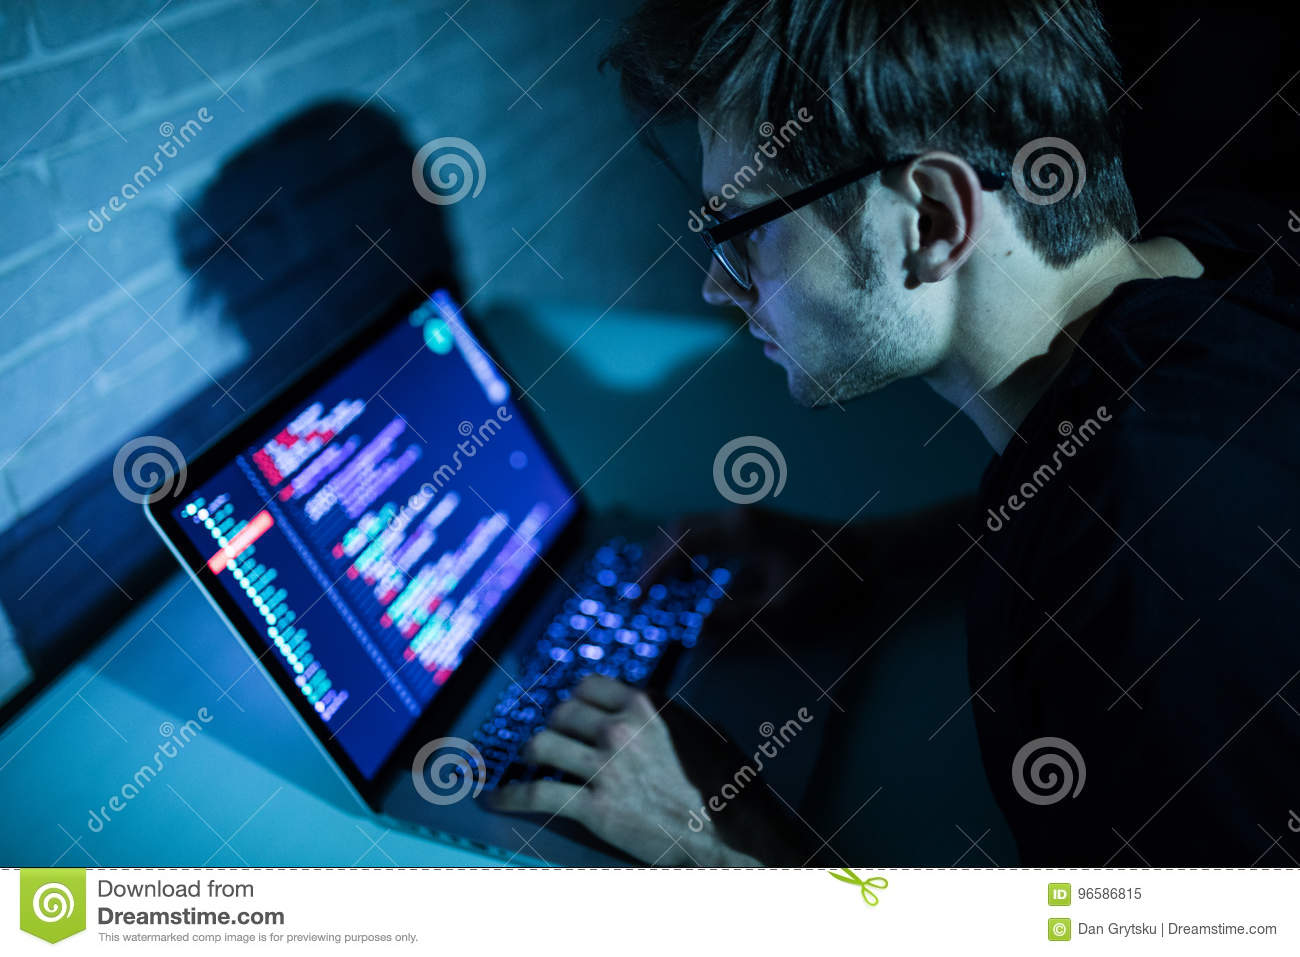 Hacker man trying to breach security of a computer system search internet